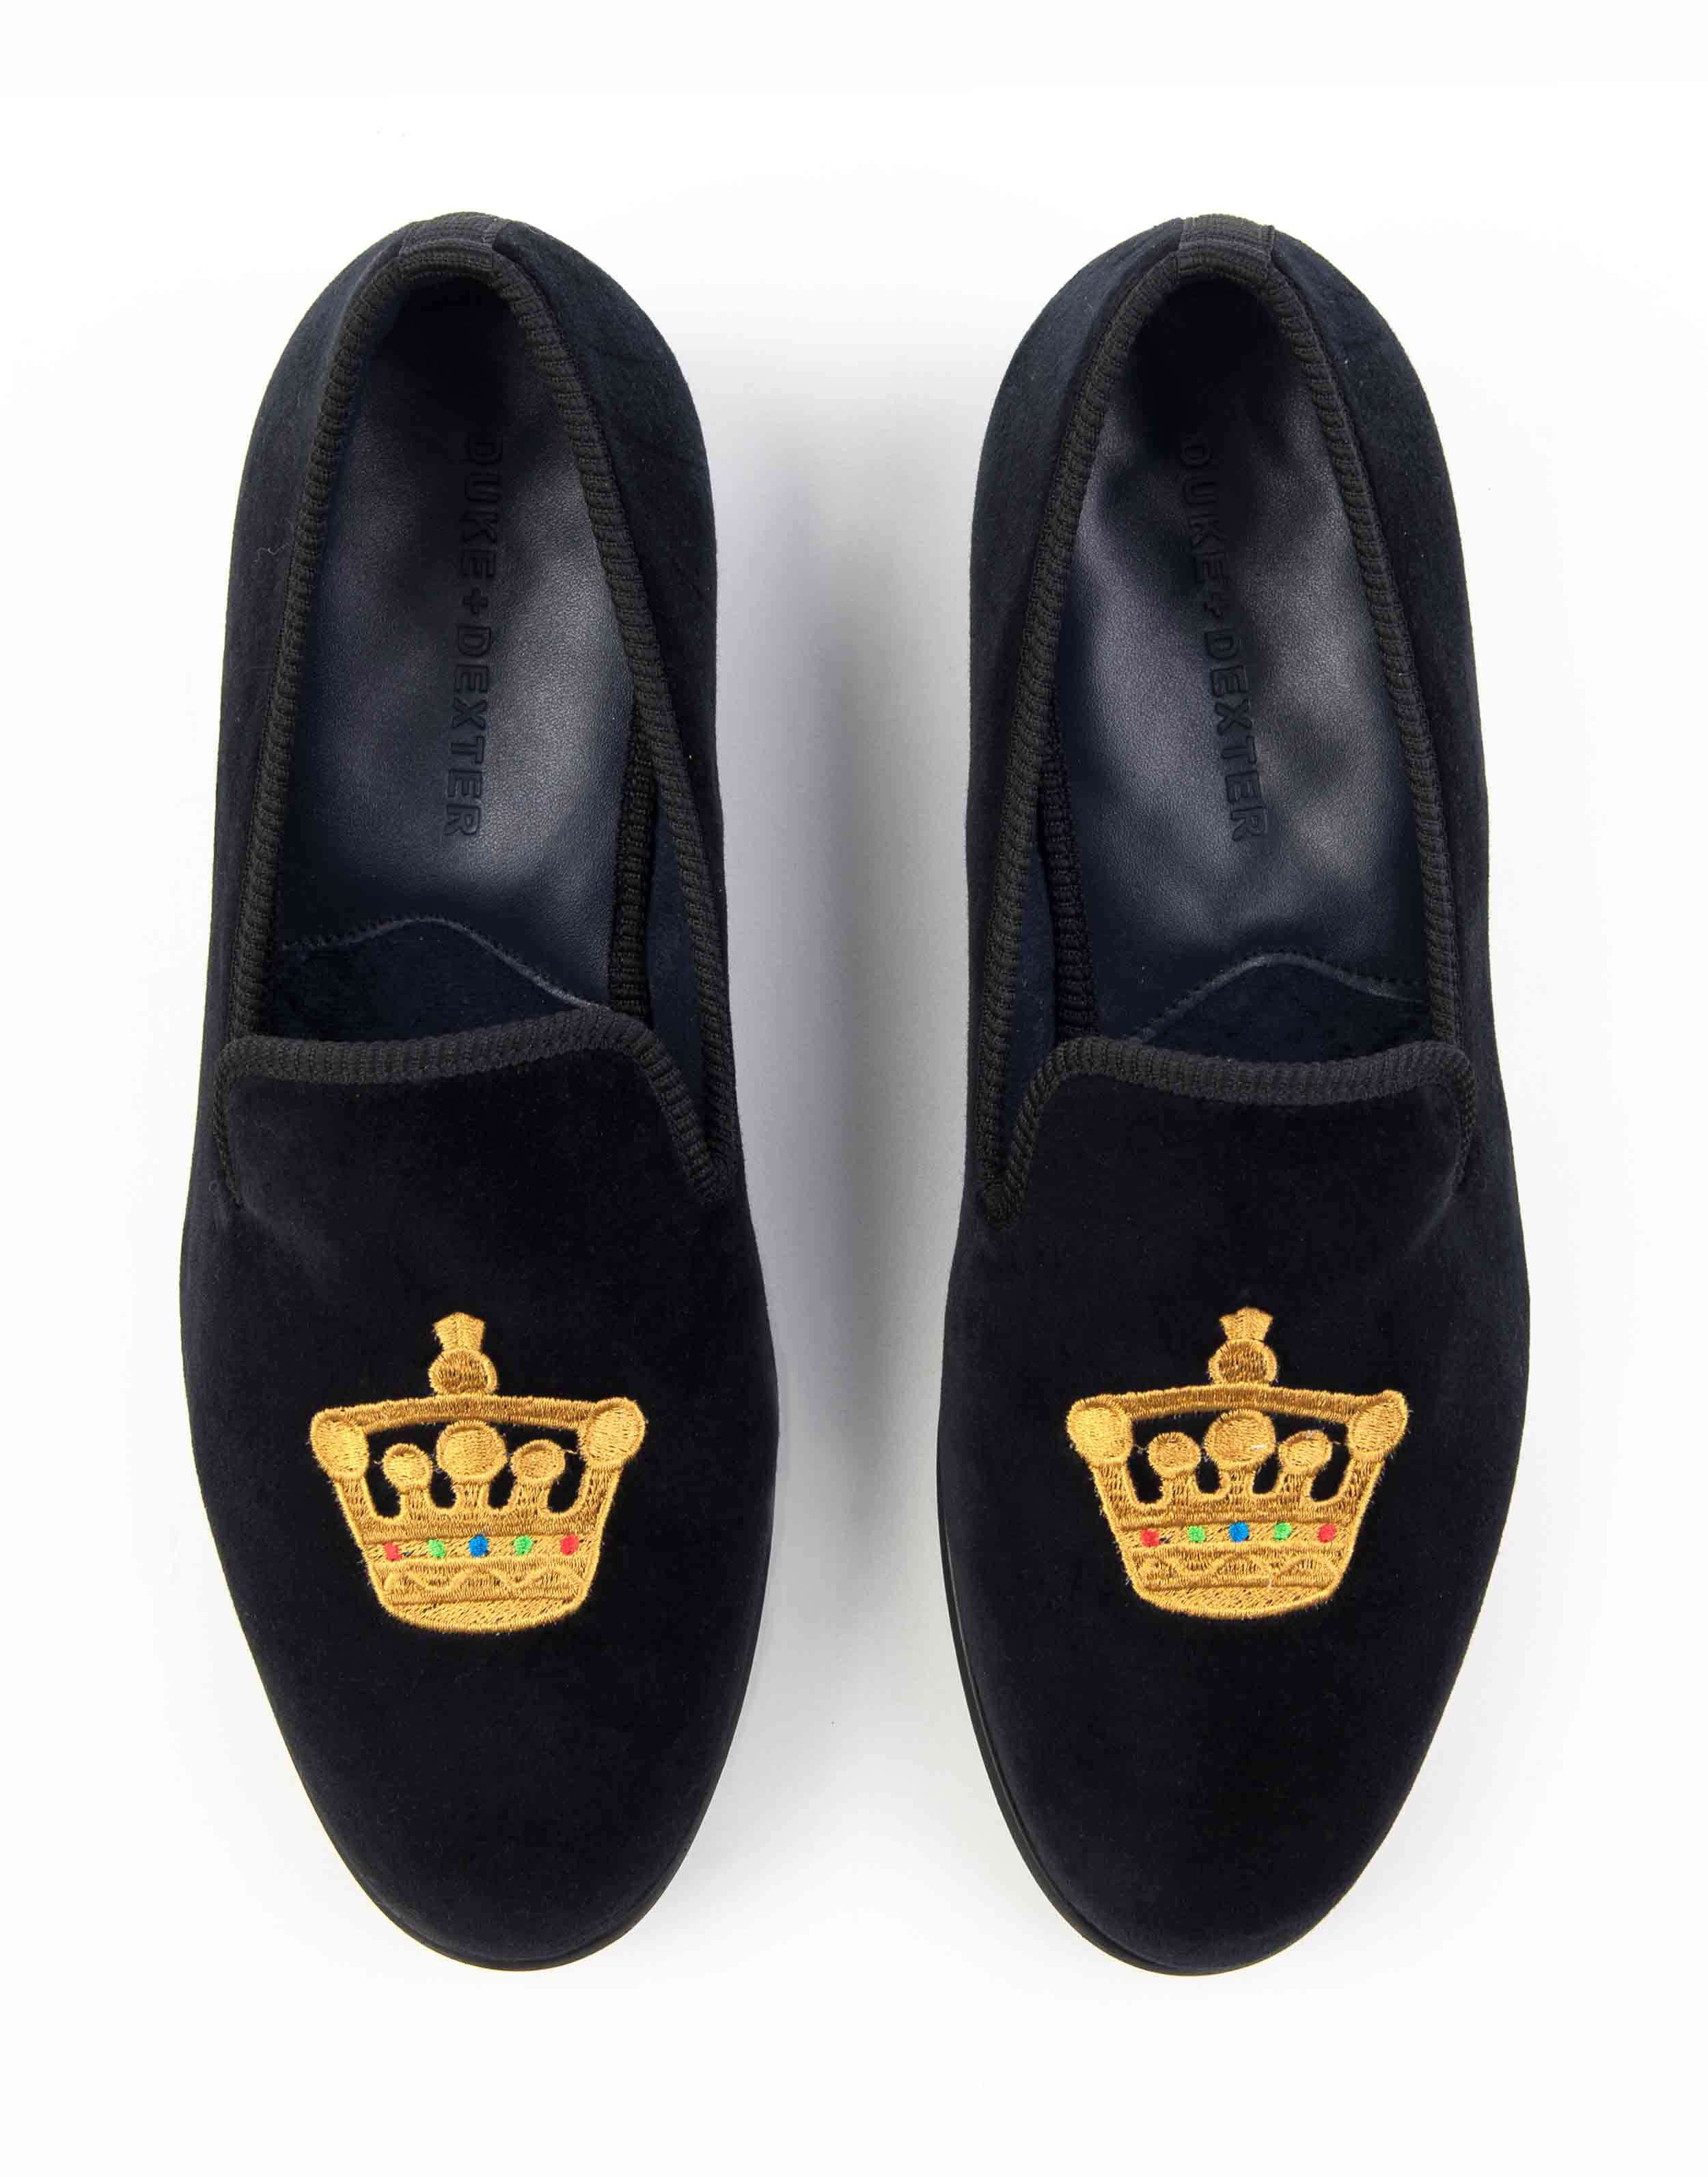 BLACK VELVET LOAFERS – CROWN4